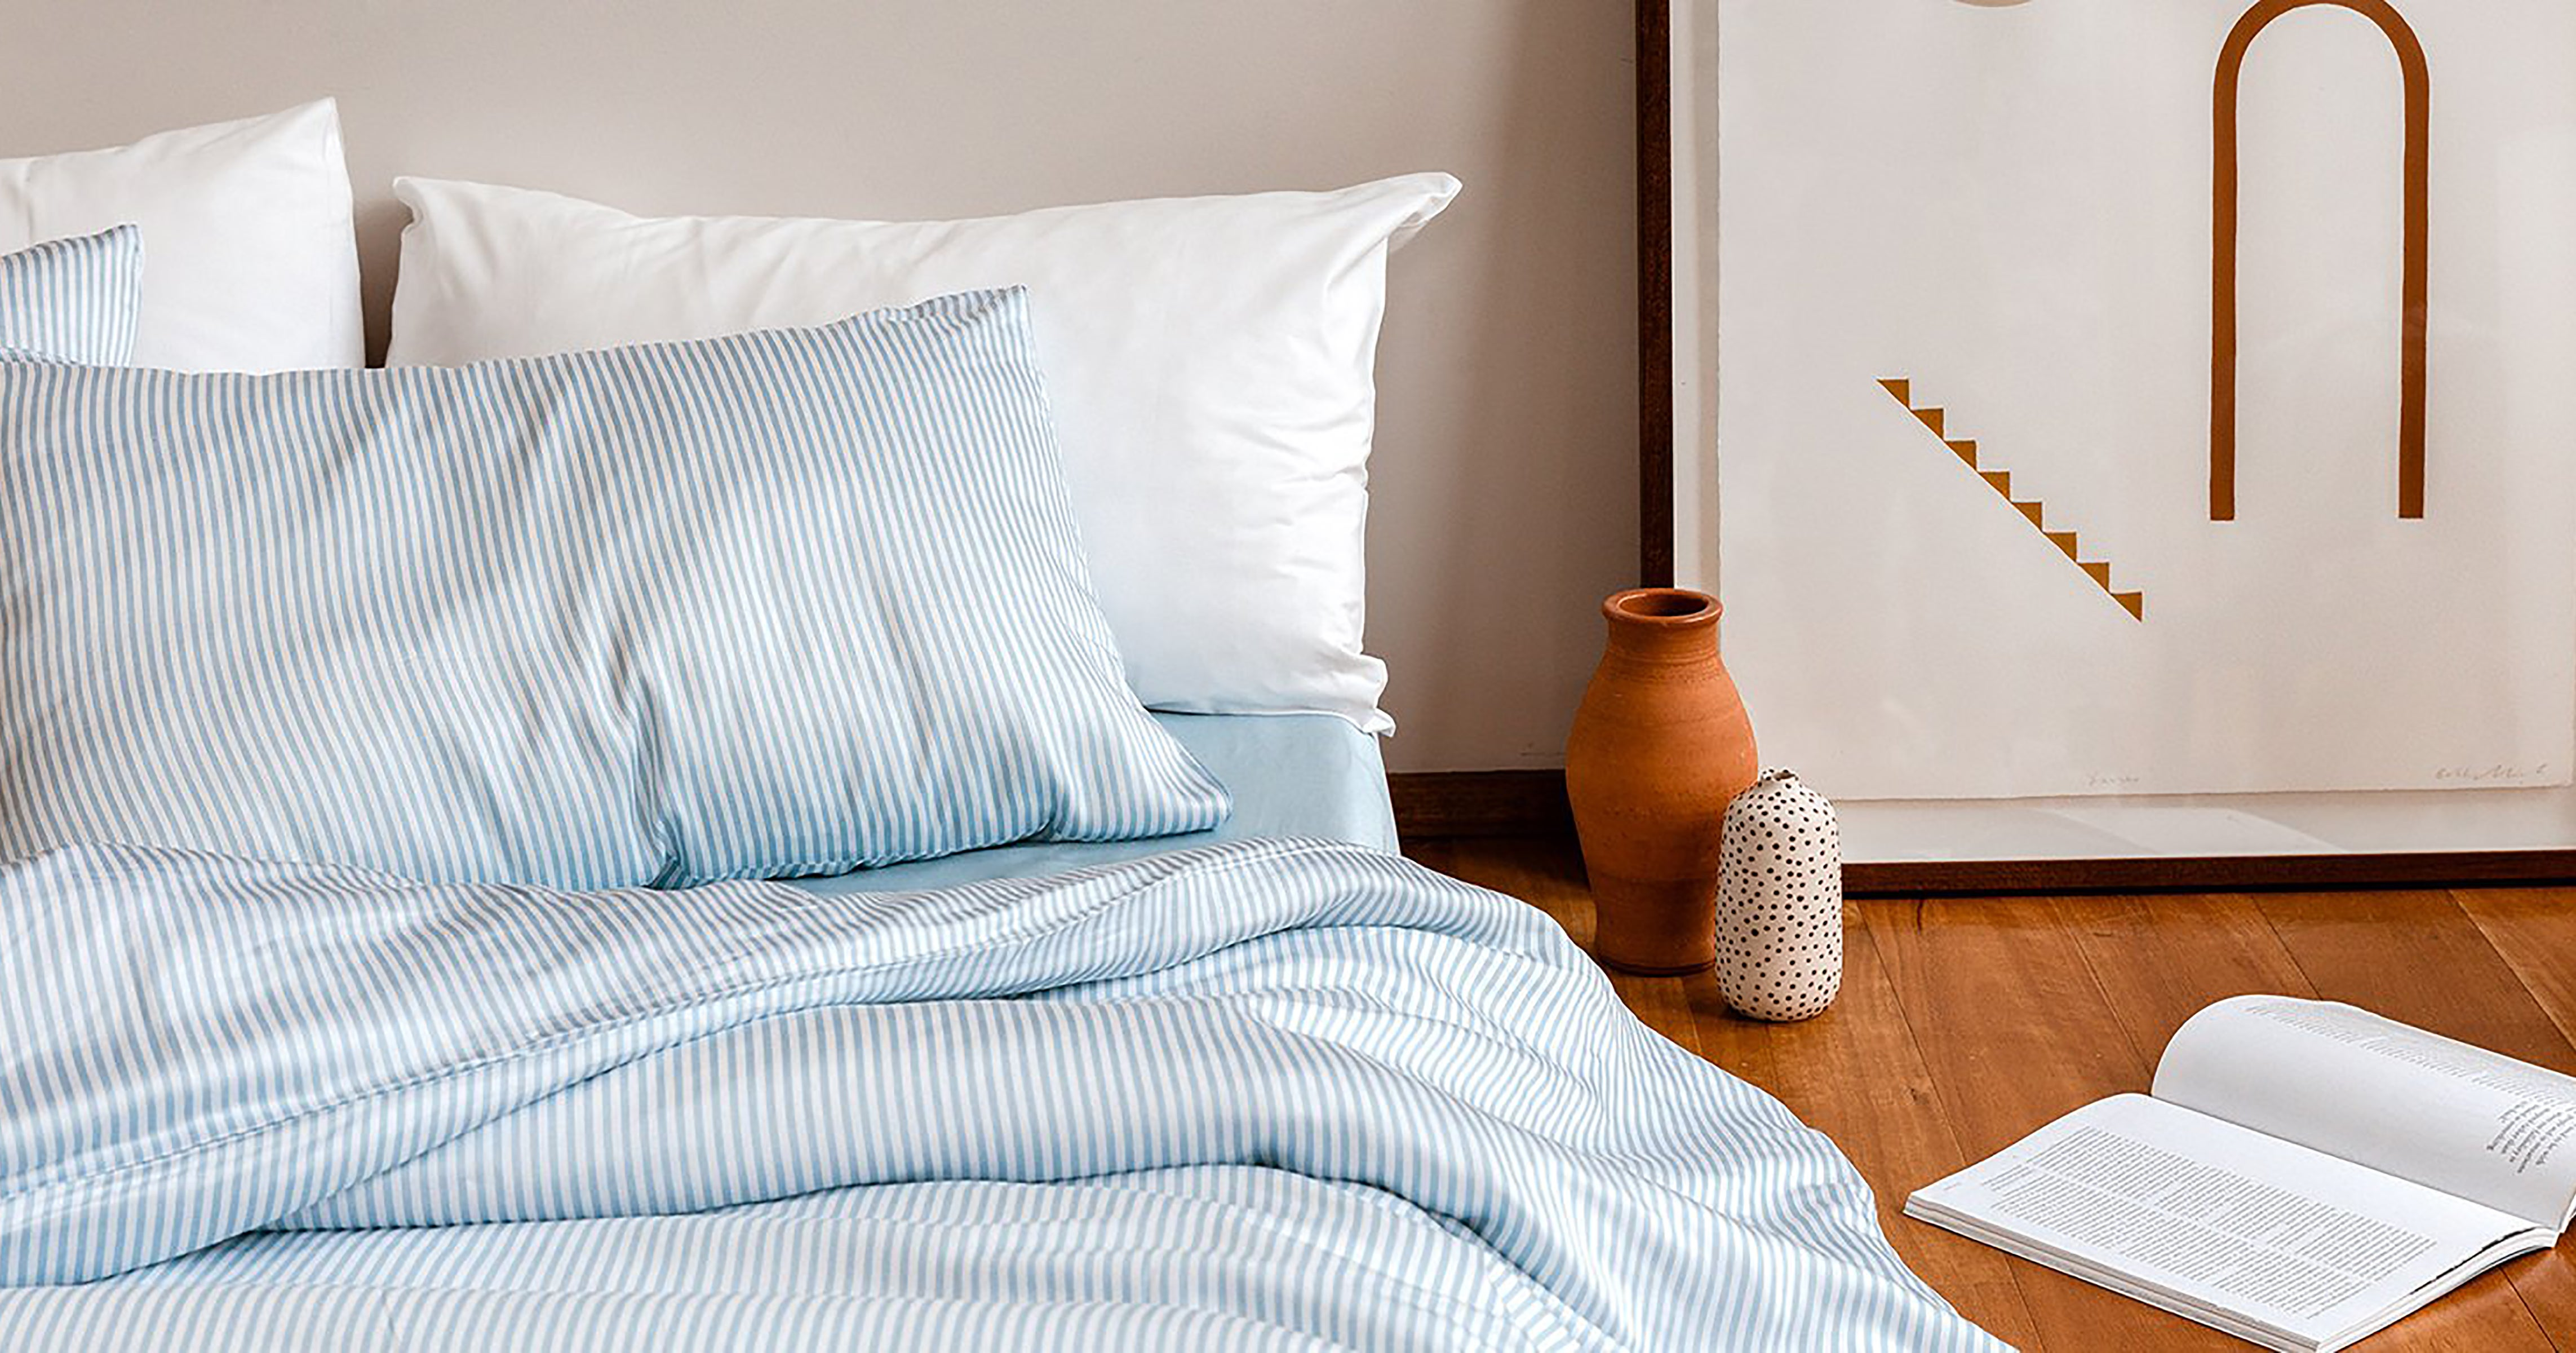 Sleep Sustainably With These Top Bedding Brands